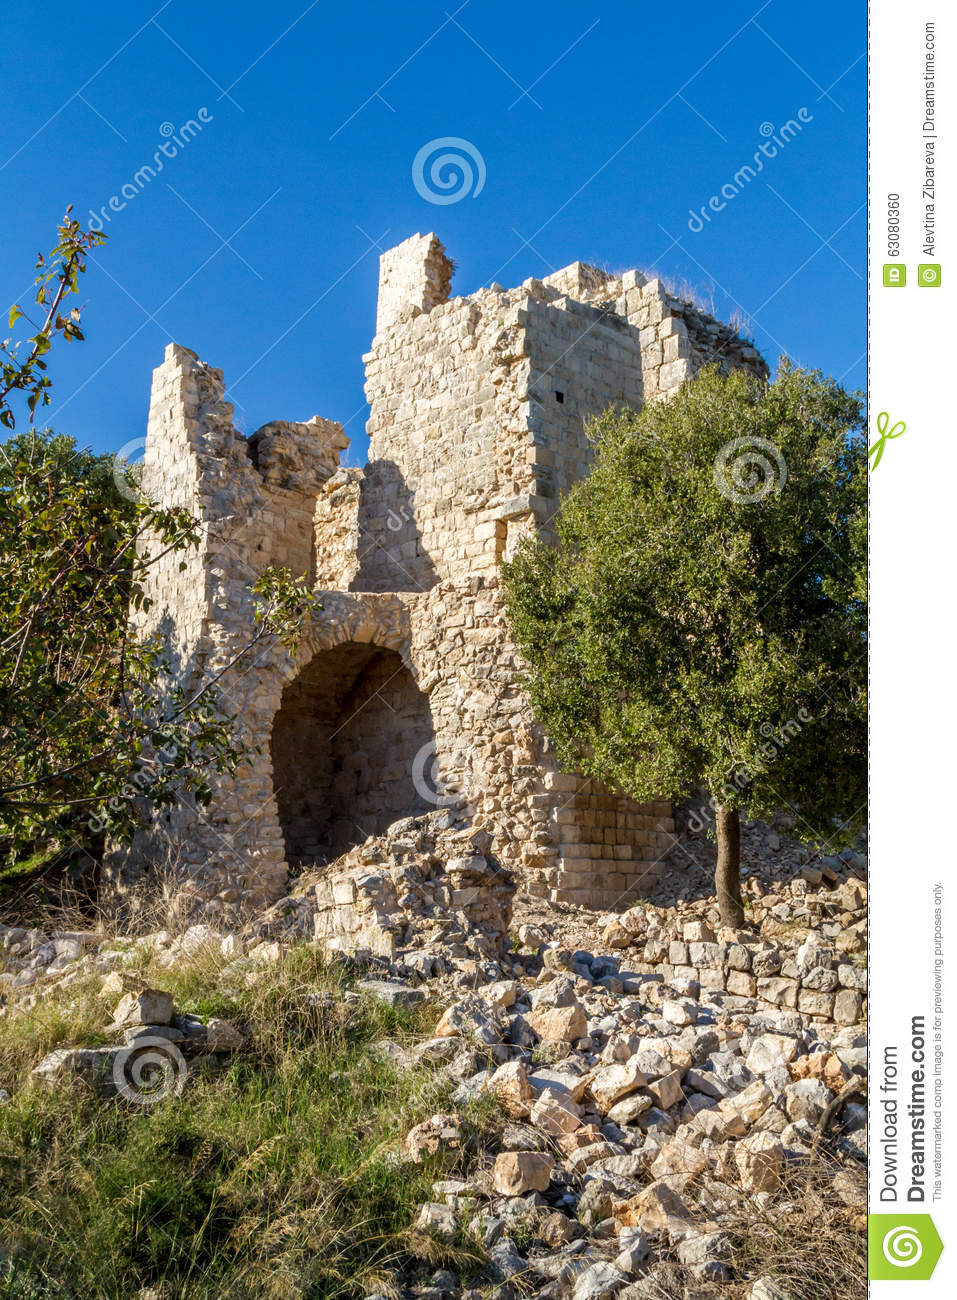 Download La Forteresse De Yehiam, Israël Photo stock - Image du brique, forteresse: 63080360